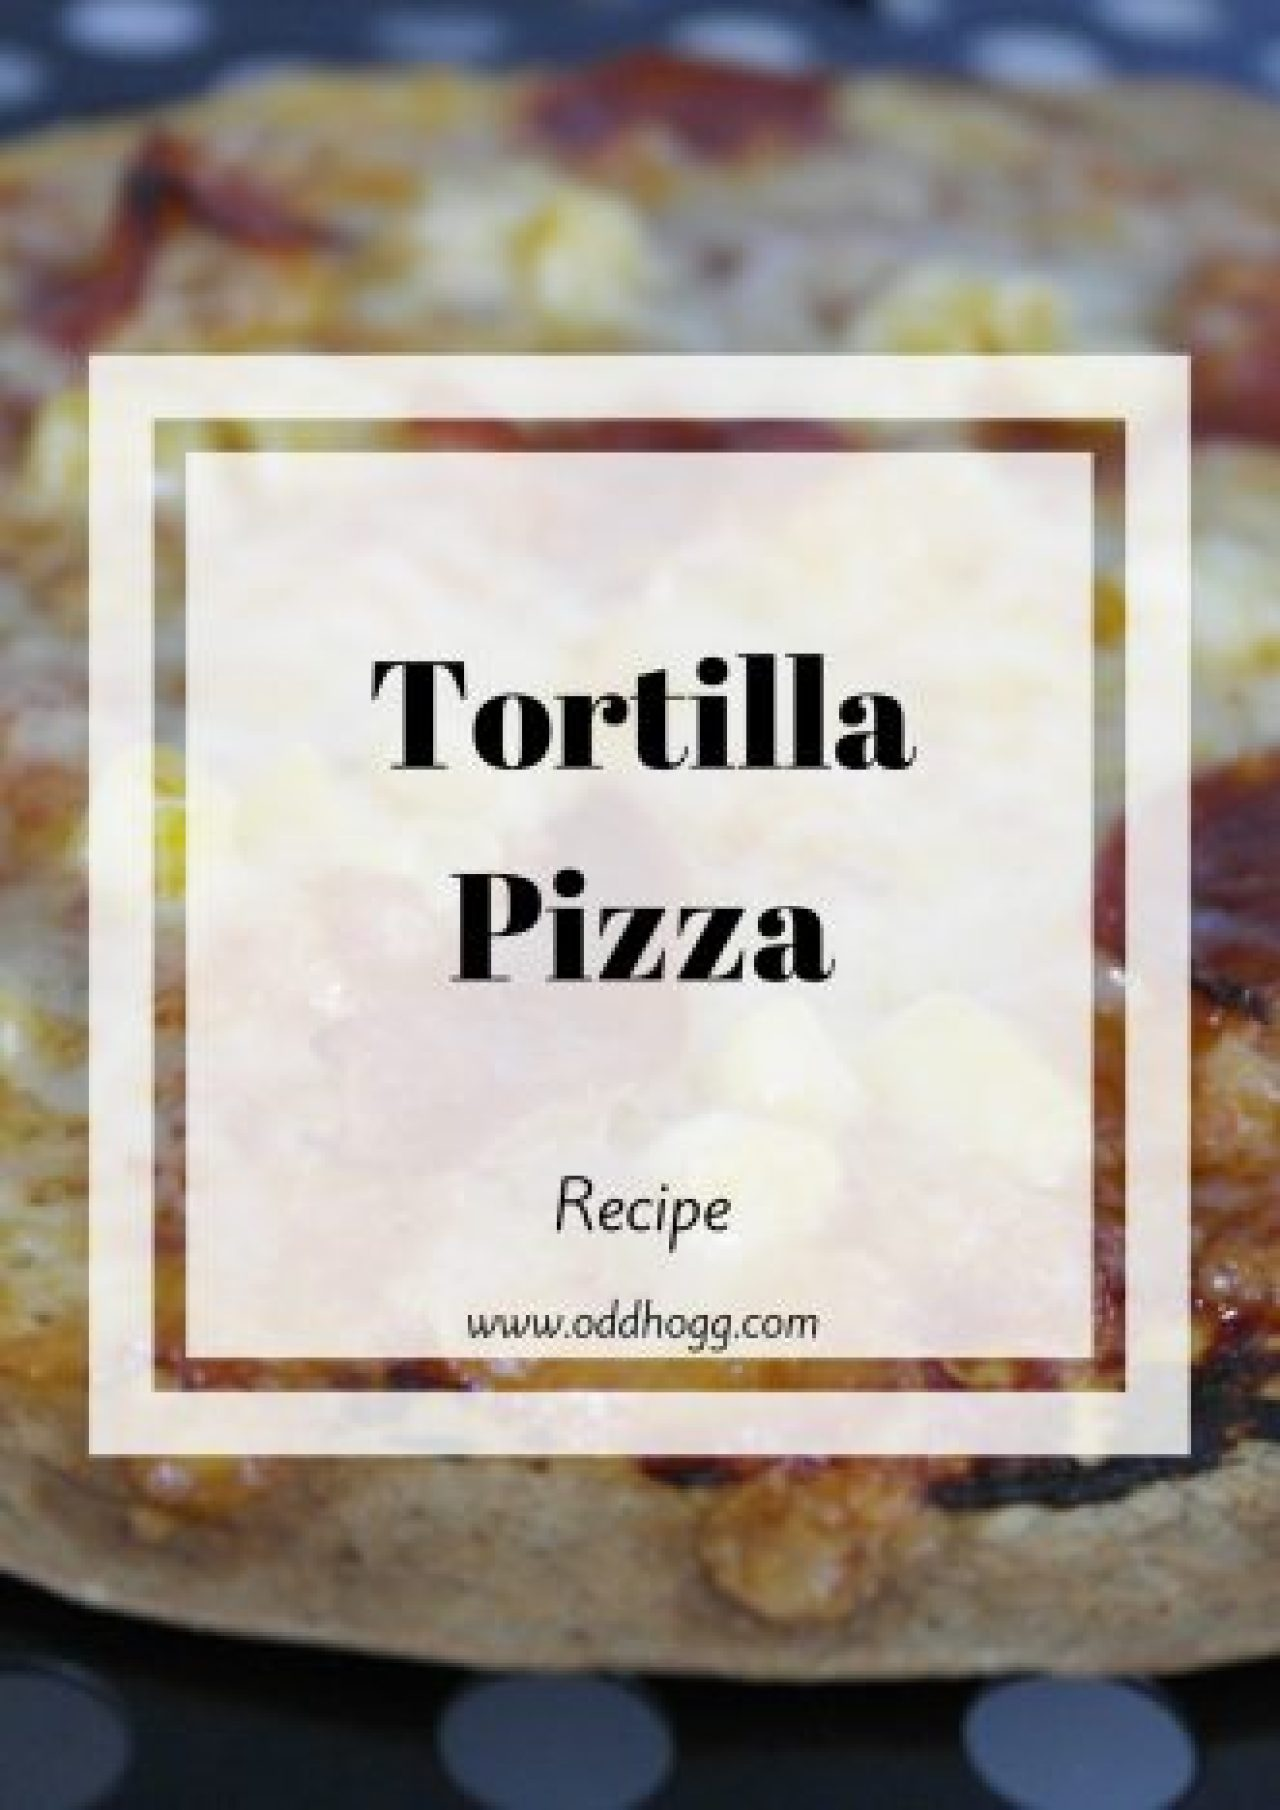 Tortilla Pizza Recipe | I have a meal idea that the whole family will love. Lower calories than a normal pizza, and you can add hidden veggies for kids. It's quick and easy - a perfect mid week meal http://oddhogg.com